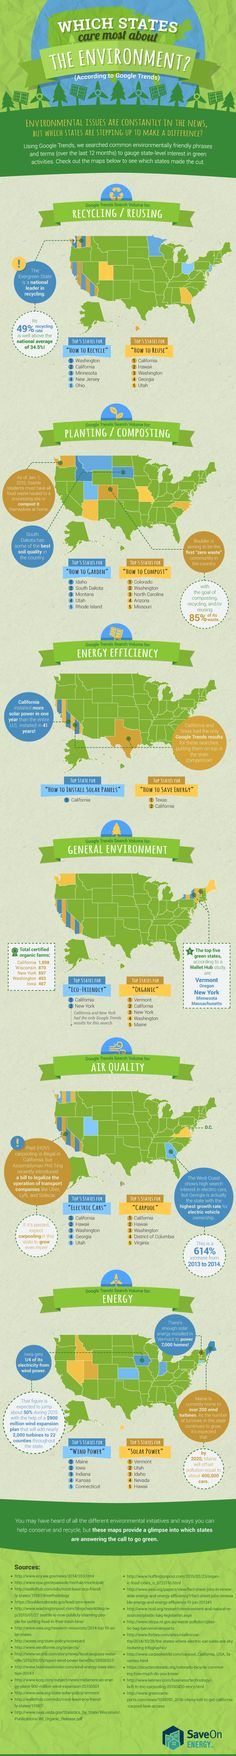 Which state do you think is the greenest? This green infographic is pretty interesting. All of the data is based on google trends. Living green is so important, more people should be doing it.